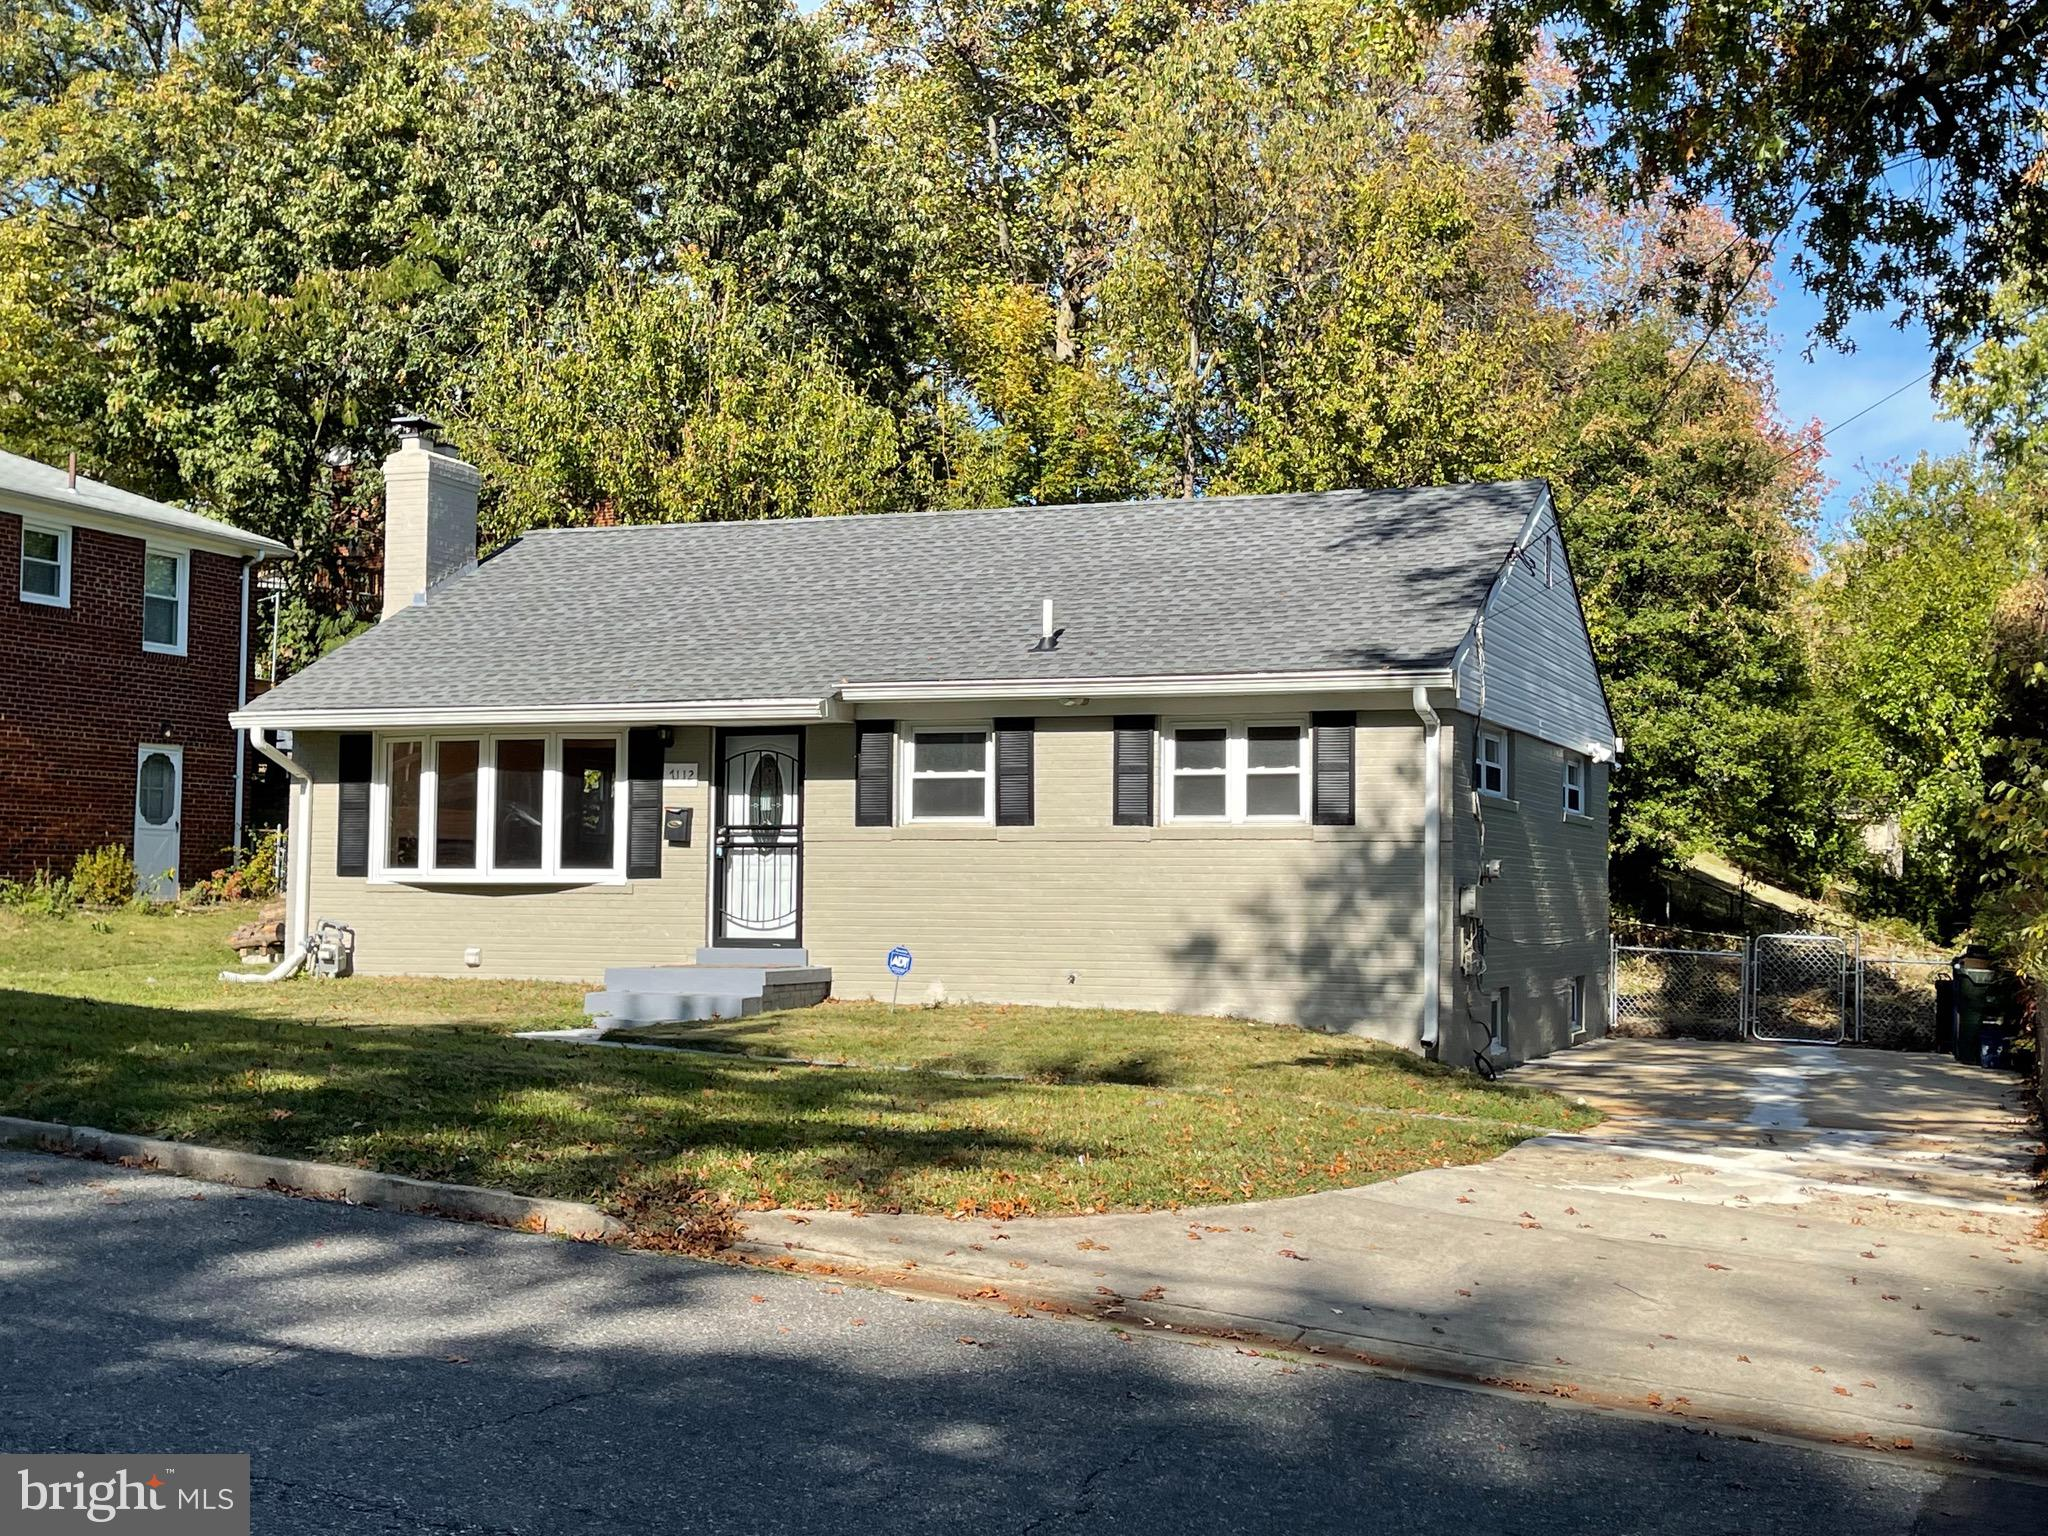 NEWLY RENOVATED RAMBLER. 3 BEDROOMS, 1 FULL BATH ON MAIN FLOOR. OPEN FLOOR PLAN WITH GORGEOUS KITCHE